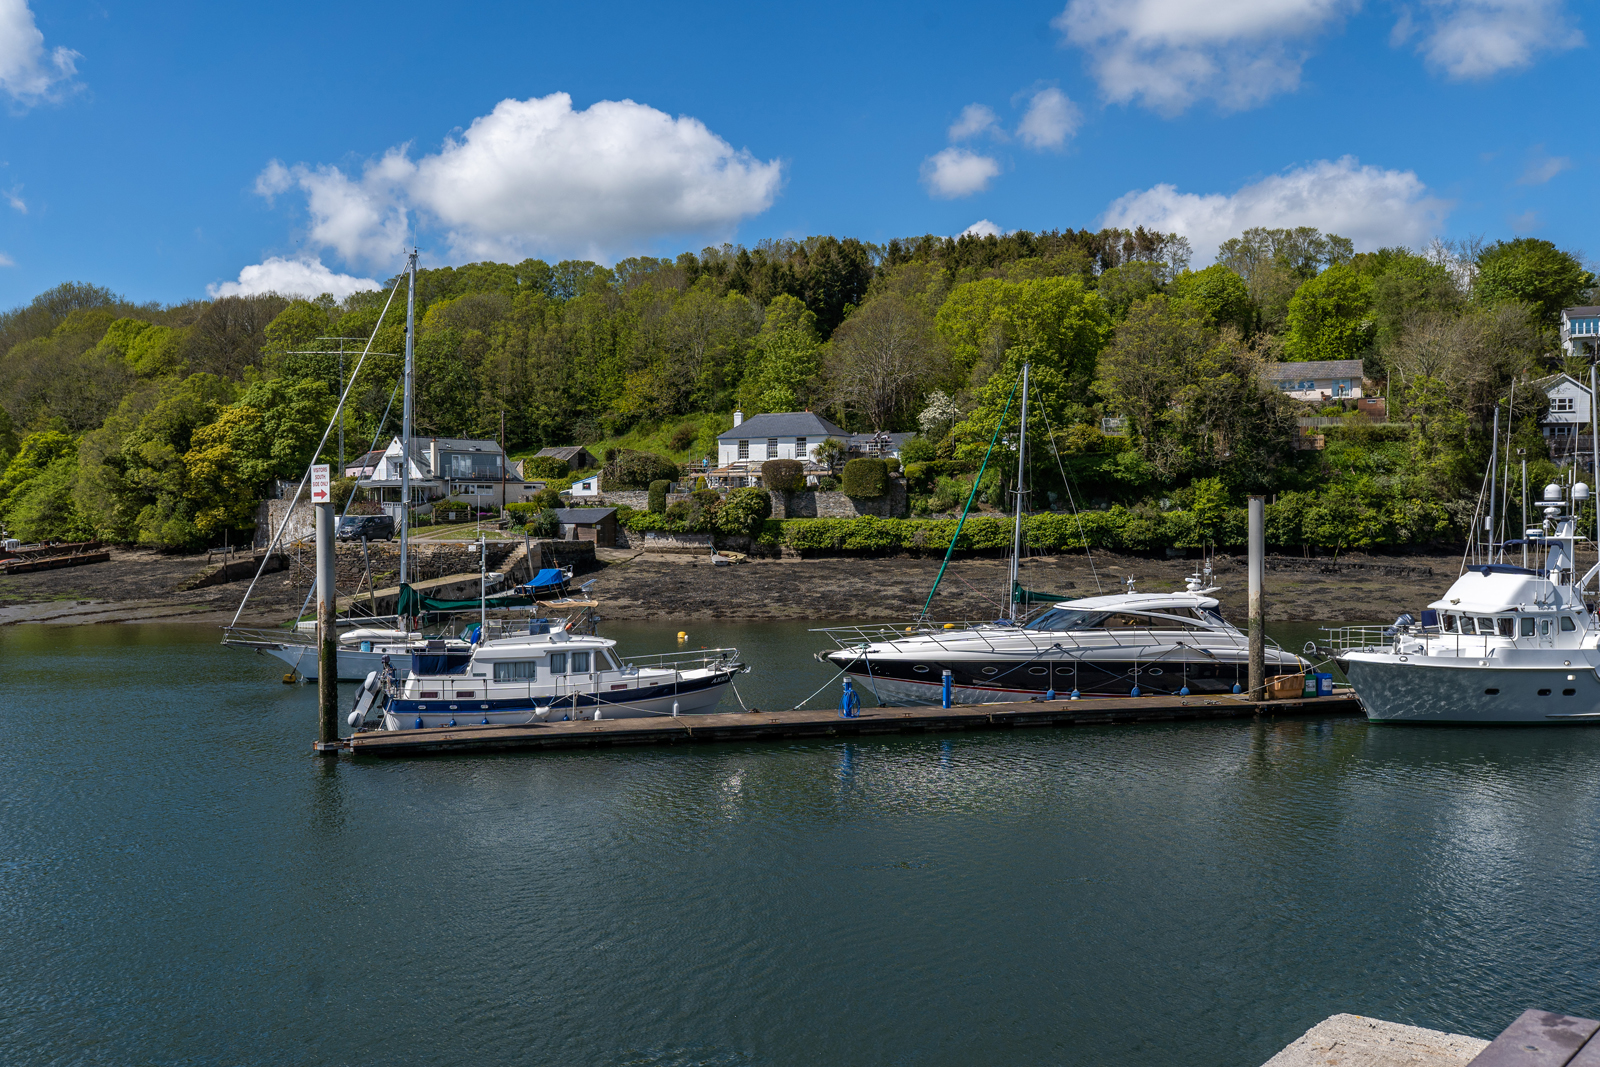 Moorings at Penmarlem